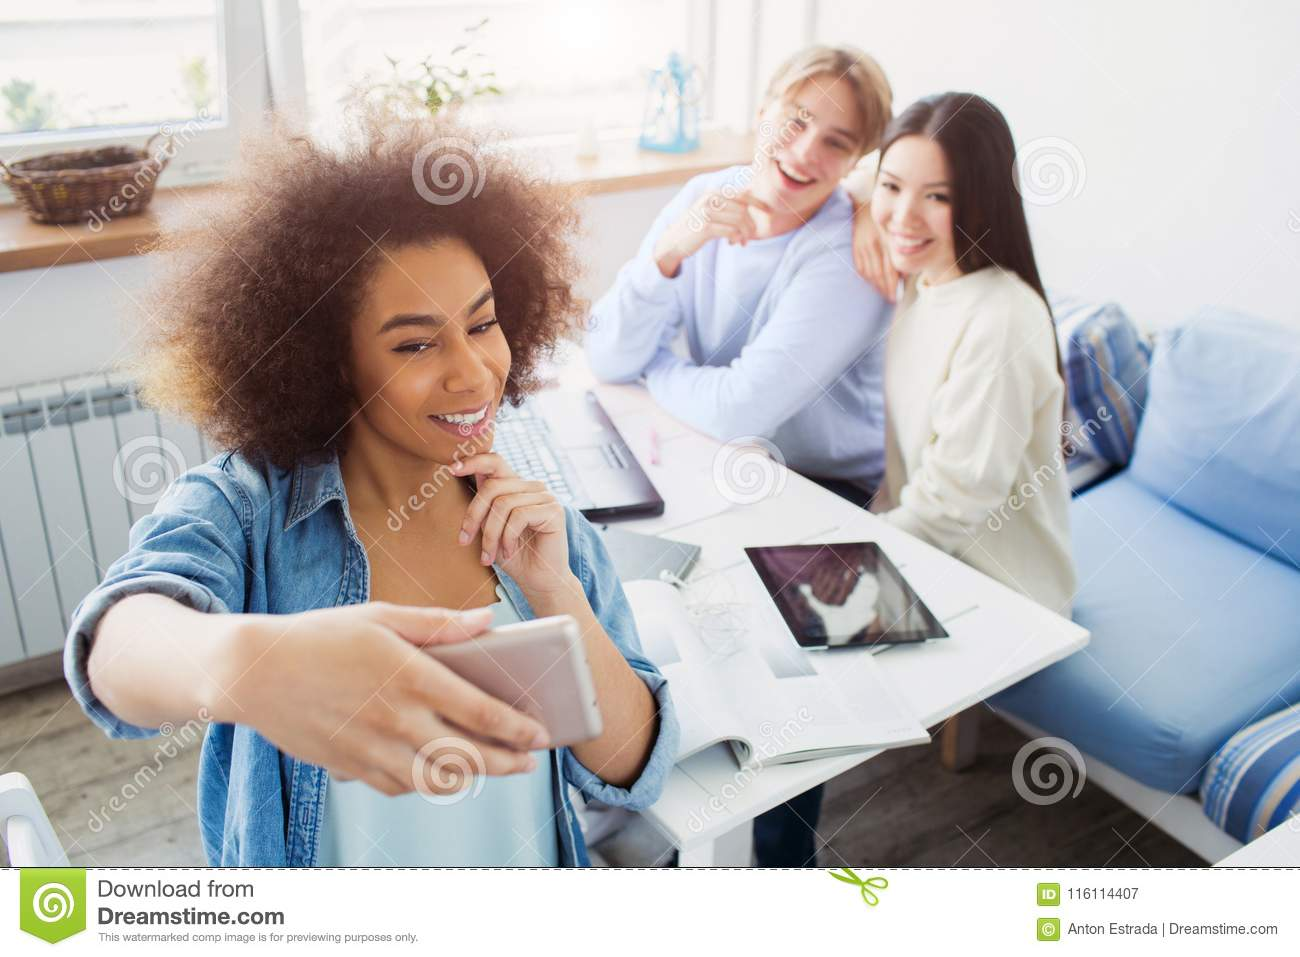 Afro american girl is taking a selfie of herself and her friends which are sitting at the table. All of them are posing